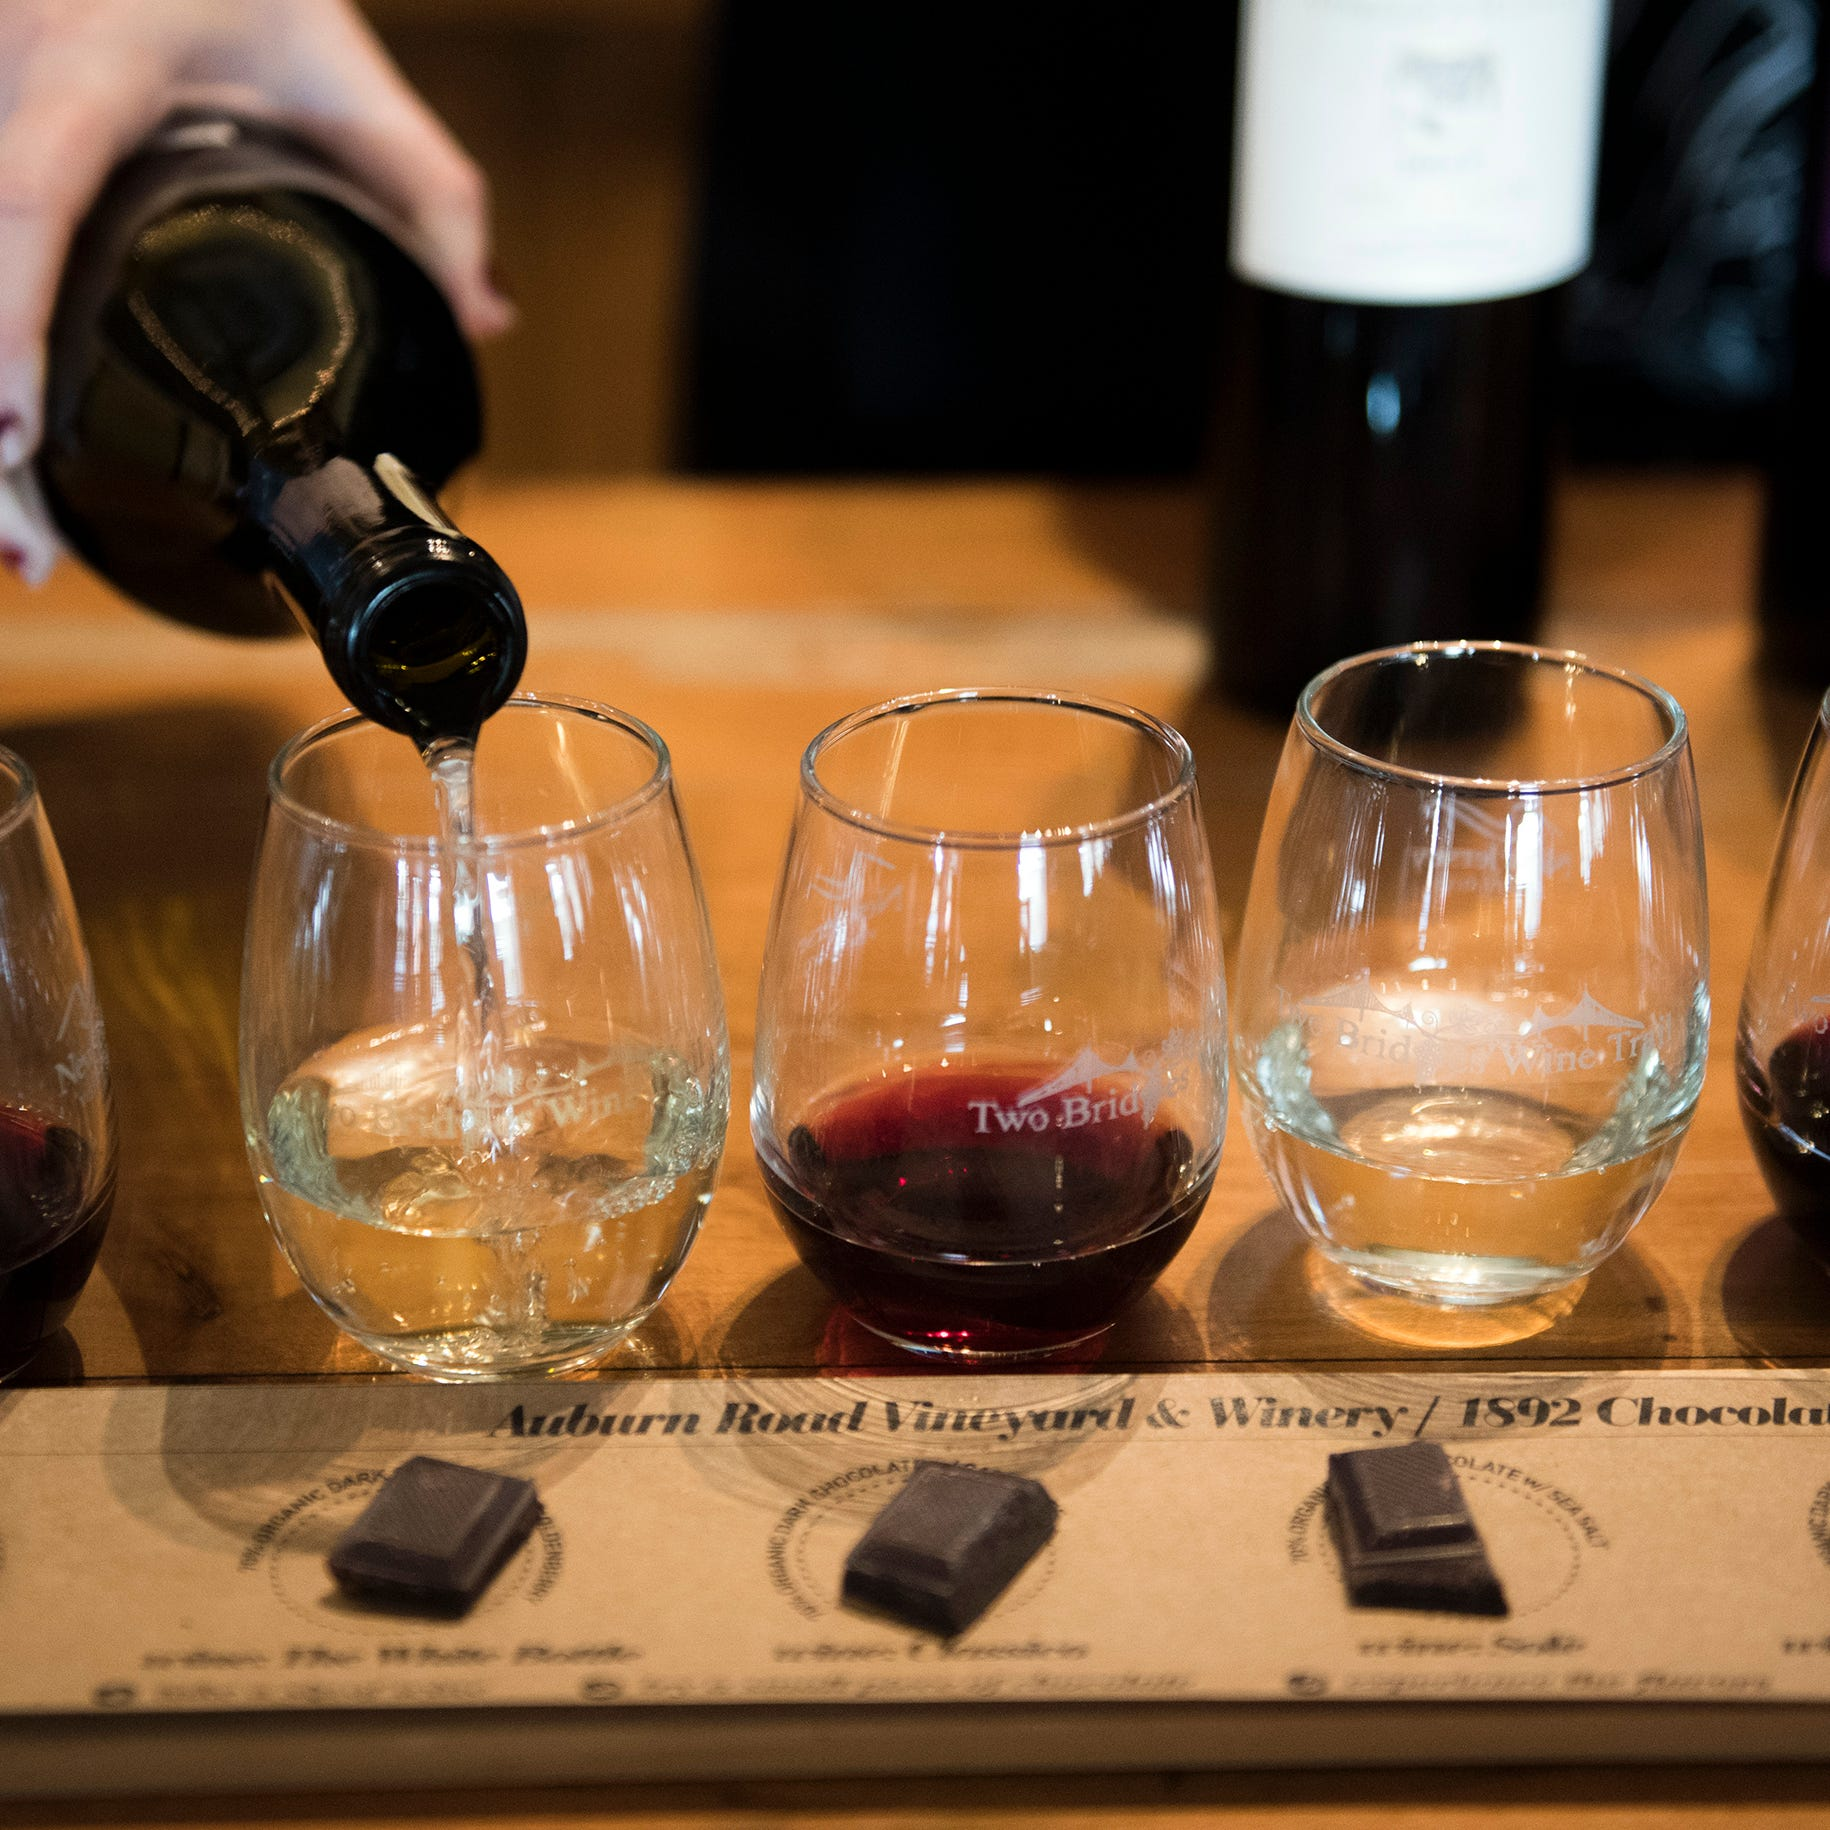 Chocolate and wine: Perfect together at New Jersey wineries